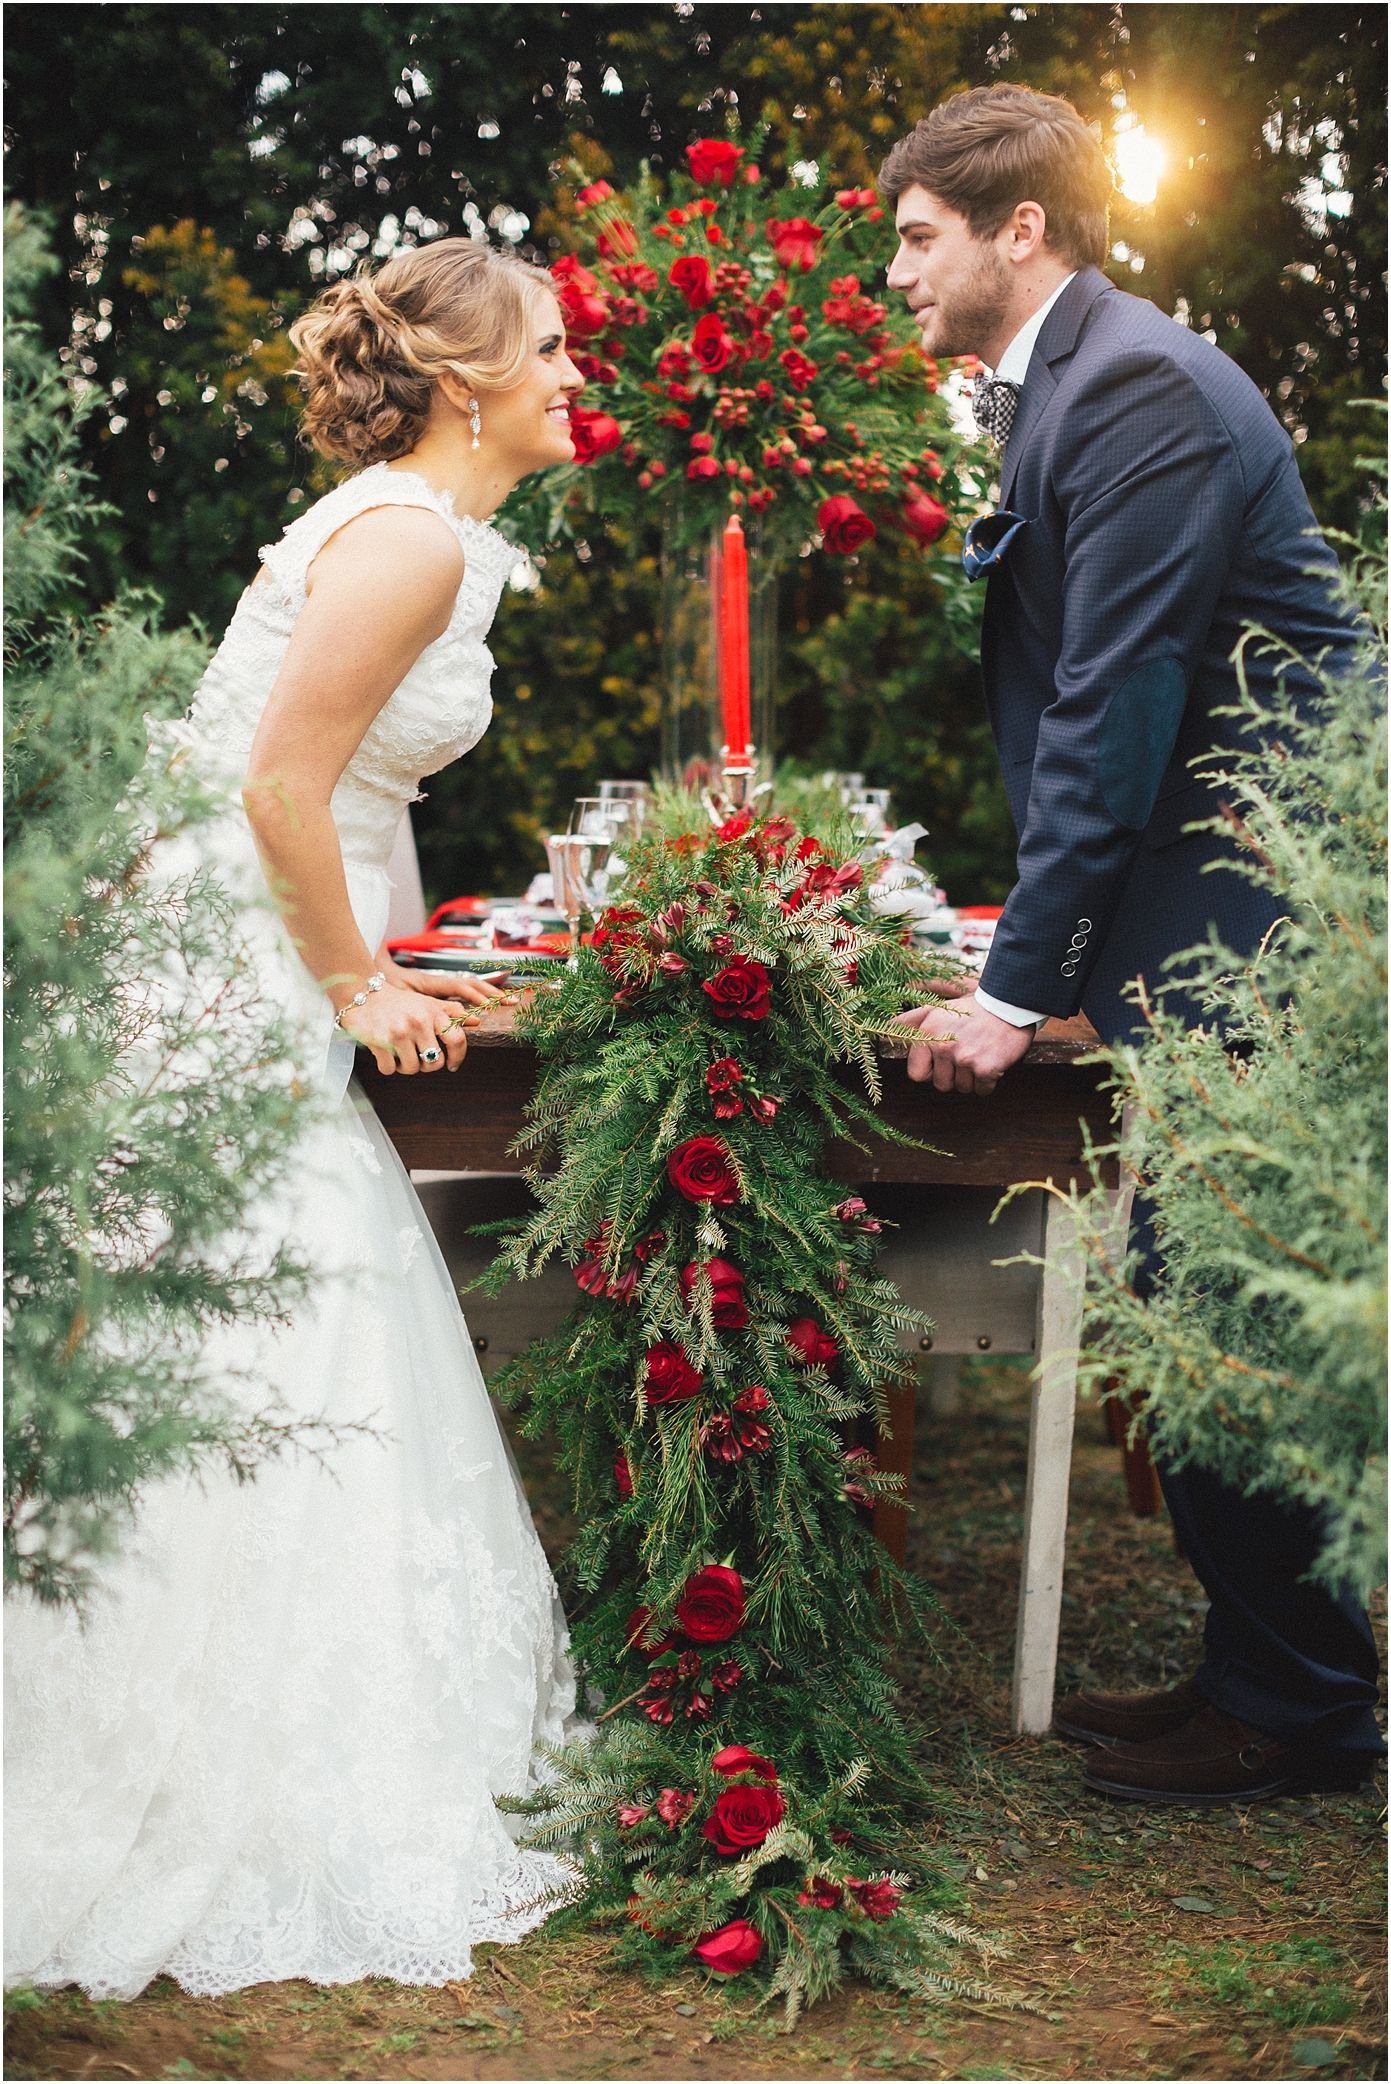 Christmas Tree Farm Wedding Inspiration And Holiday Home Decorating Ideas In Knoxville Tn Winter Wedding Winter Wedding Flowers Wedding Styles Winter Wedding